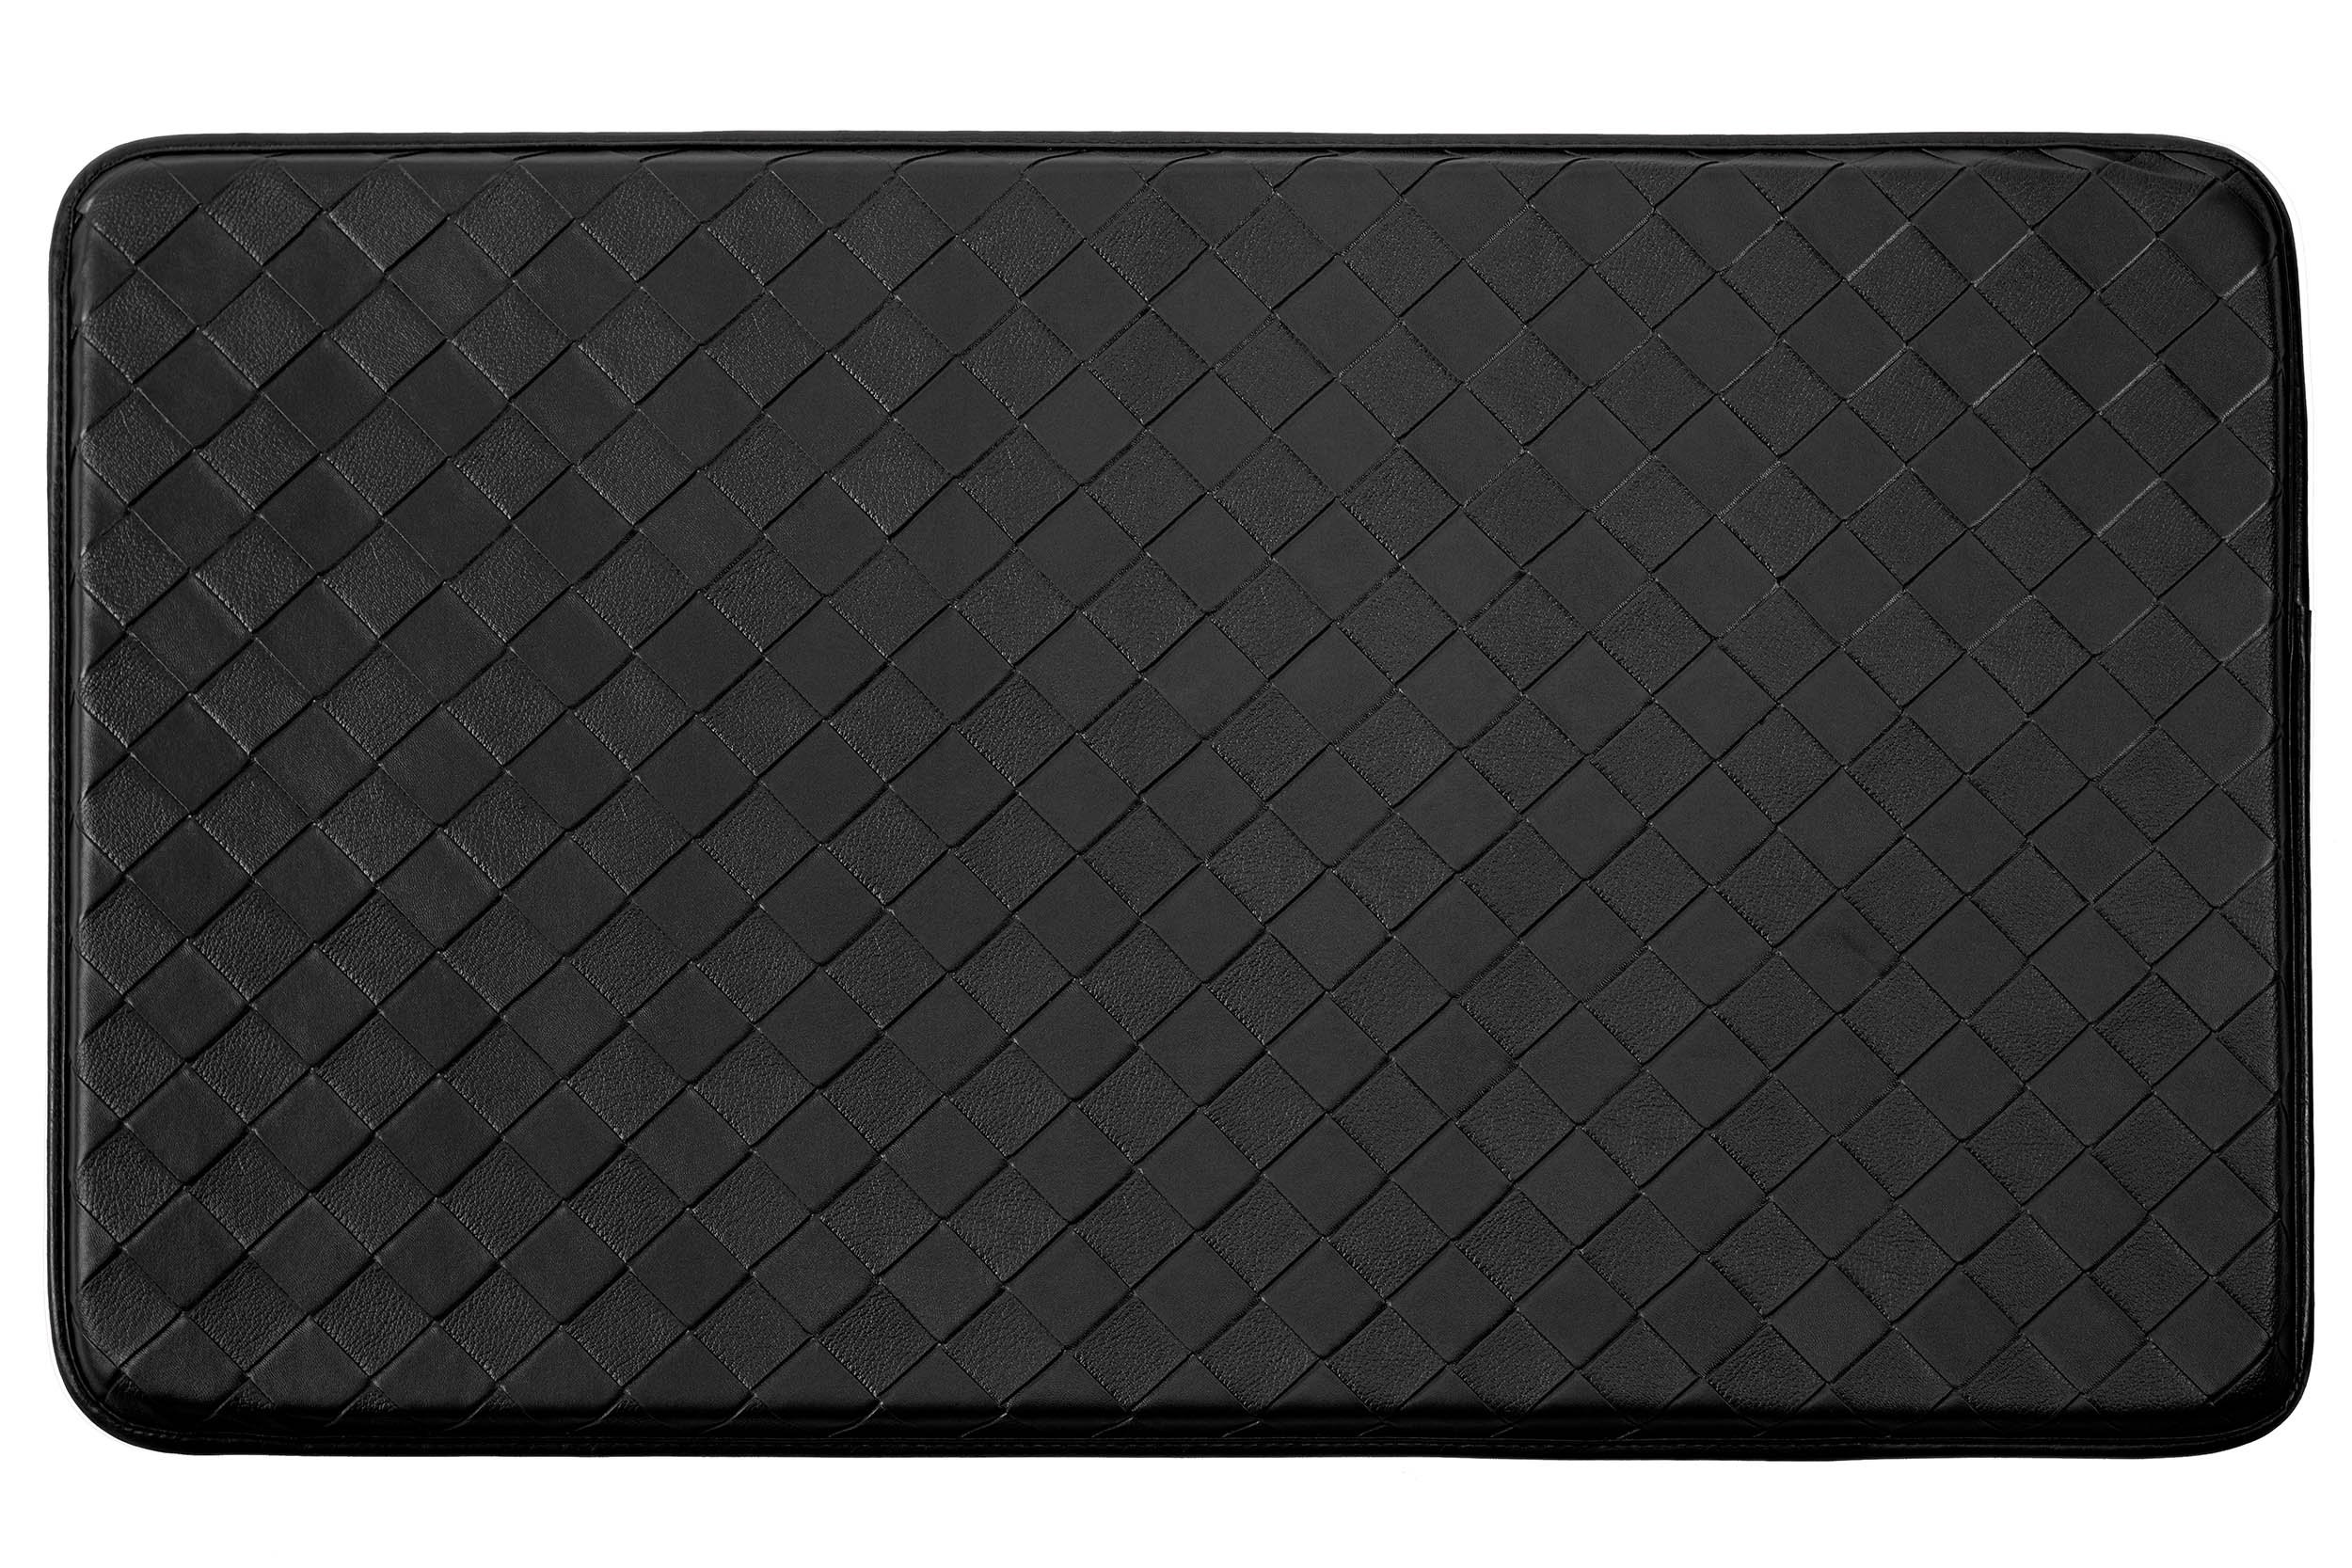 Chef Gear Diamond Weave Non-Skid Comfort Chef Mat, 18 by 30-Inch, Black